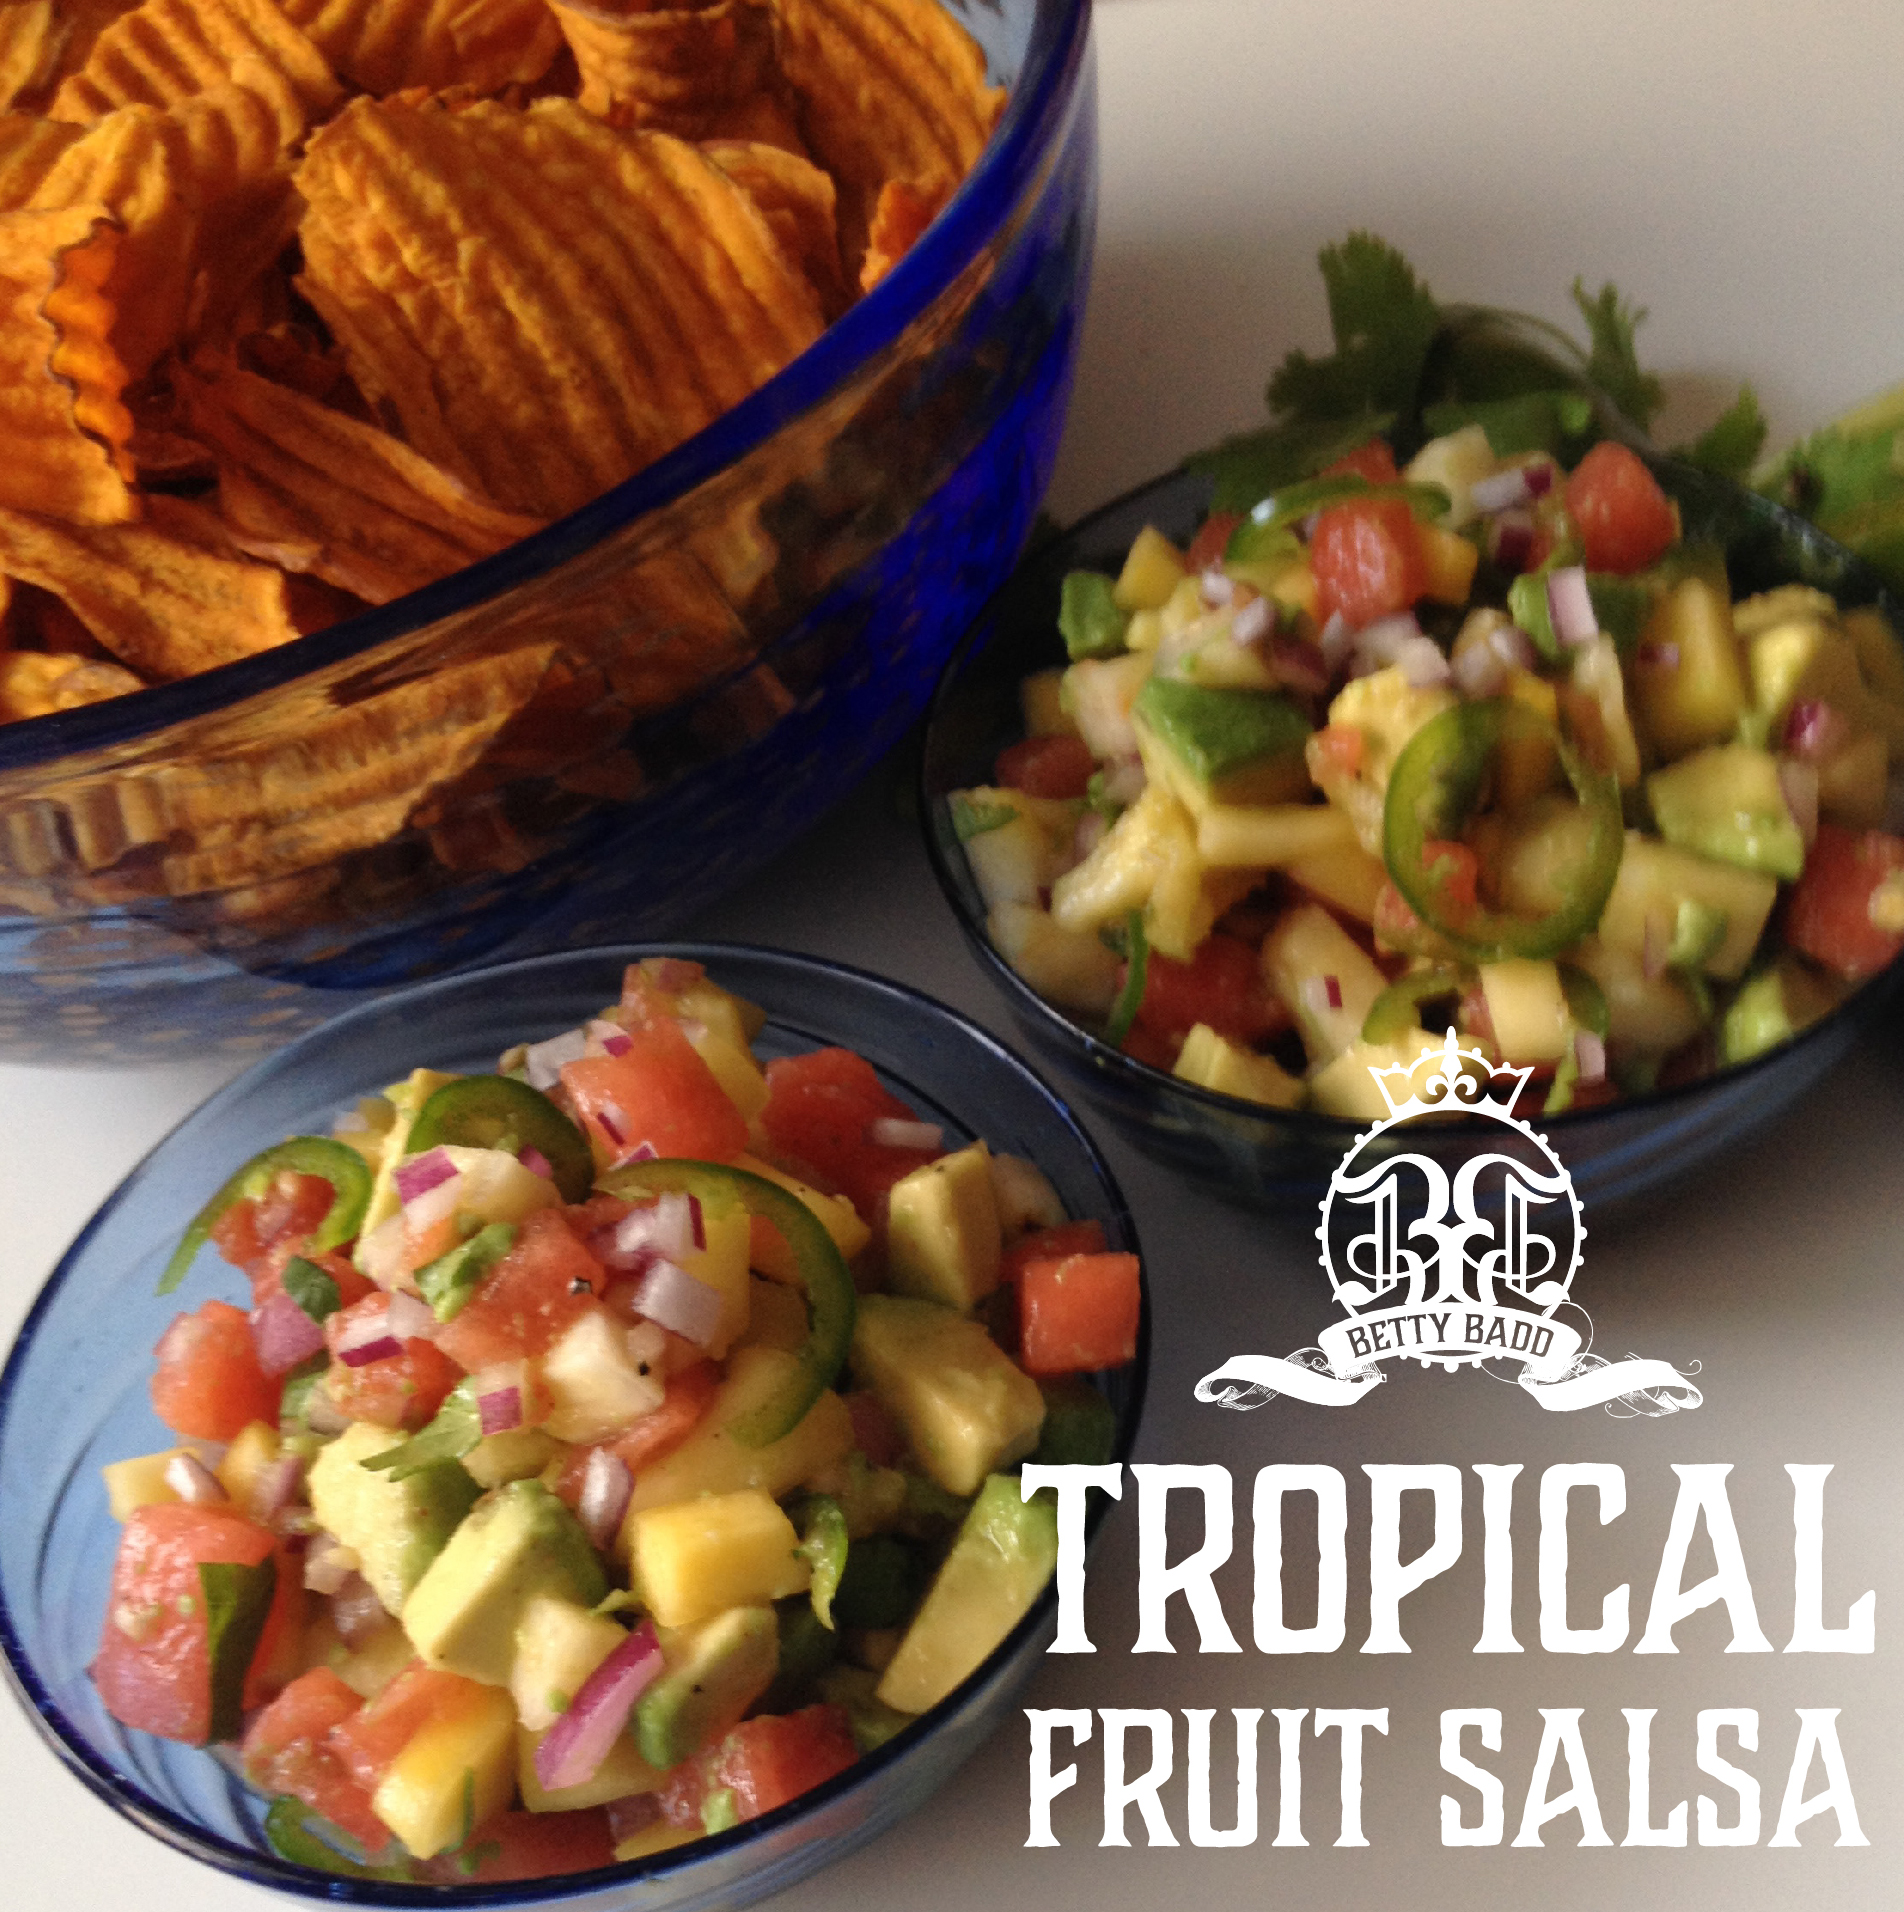 Tropical Fruit Salsa.jpg